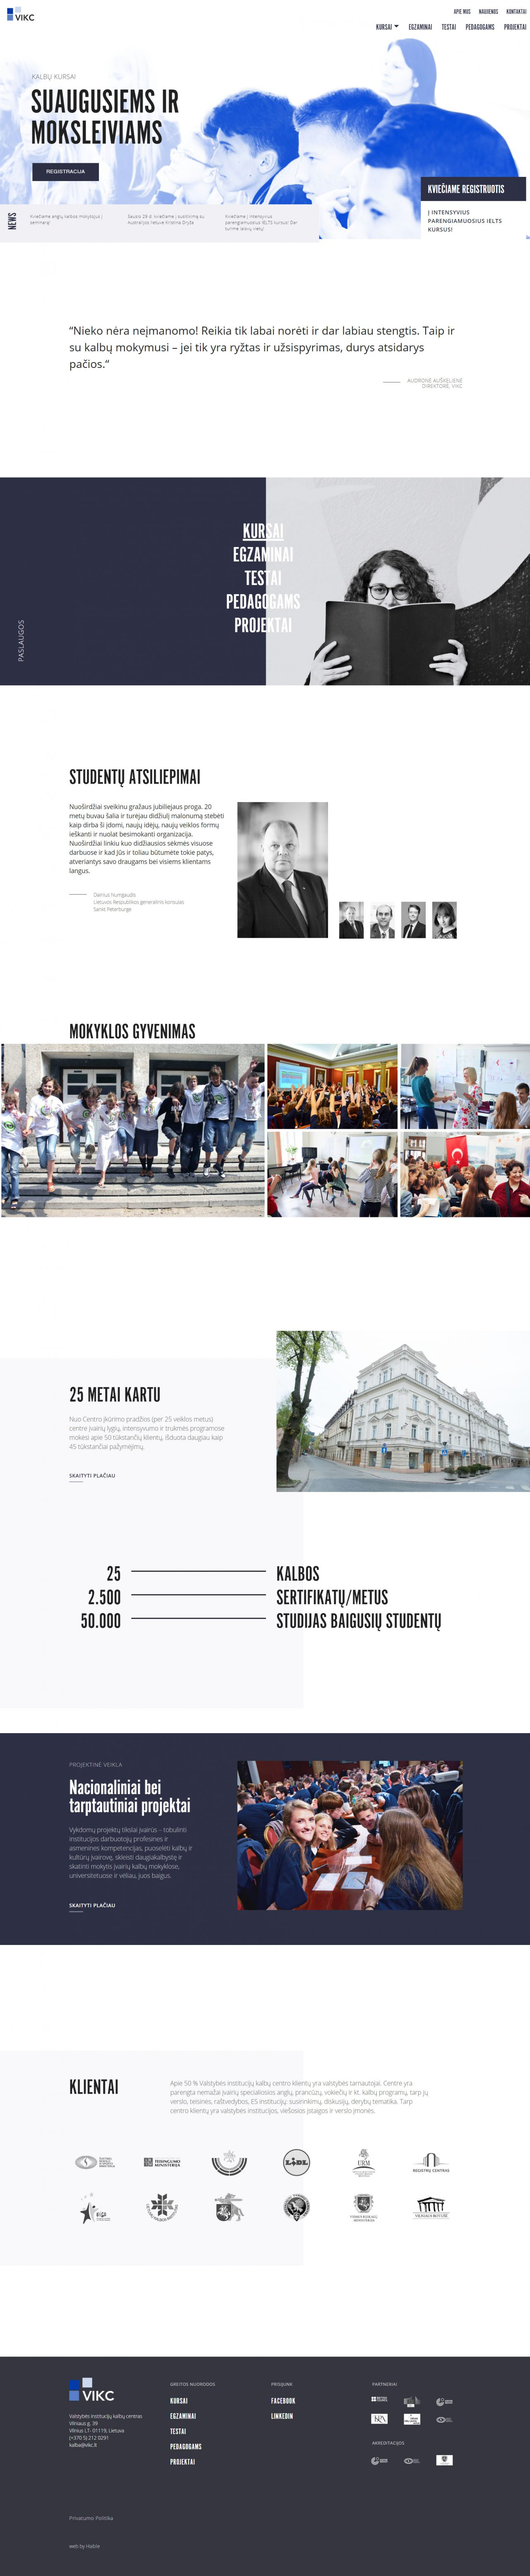 website home page design for language school, design and development by Hable Studios